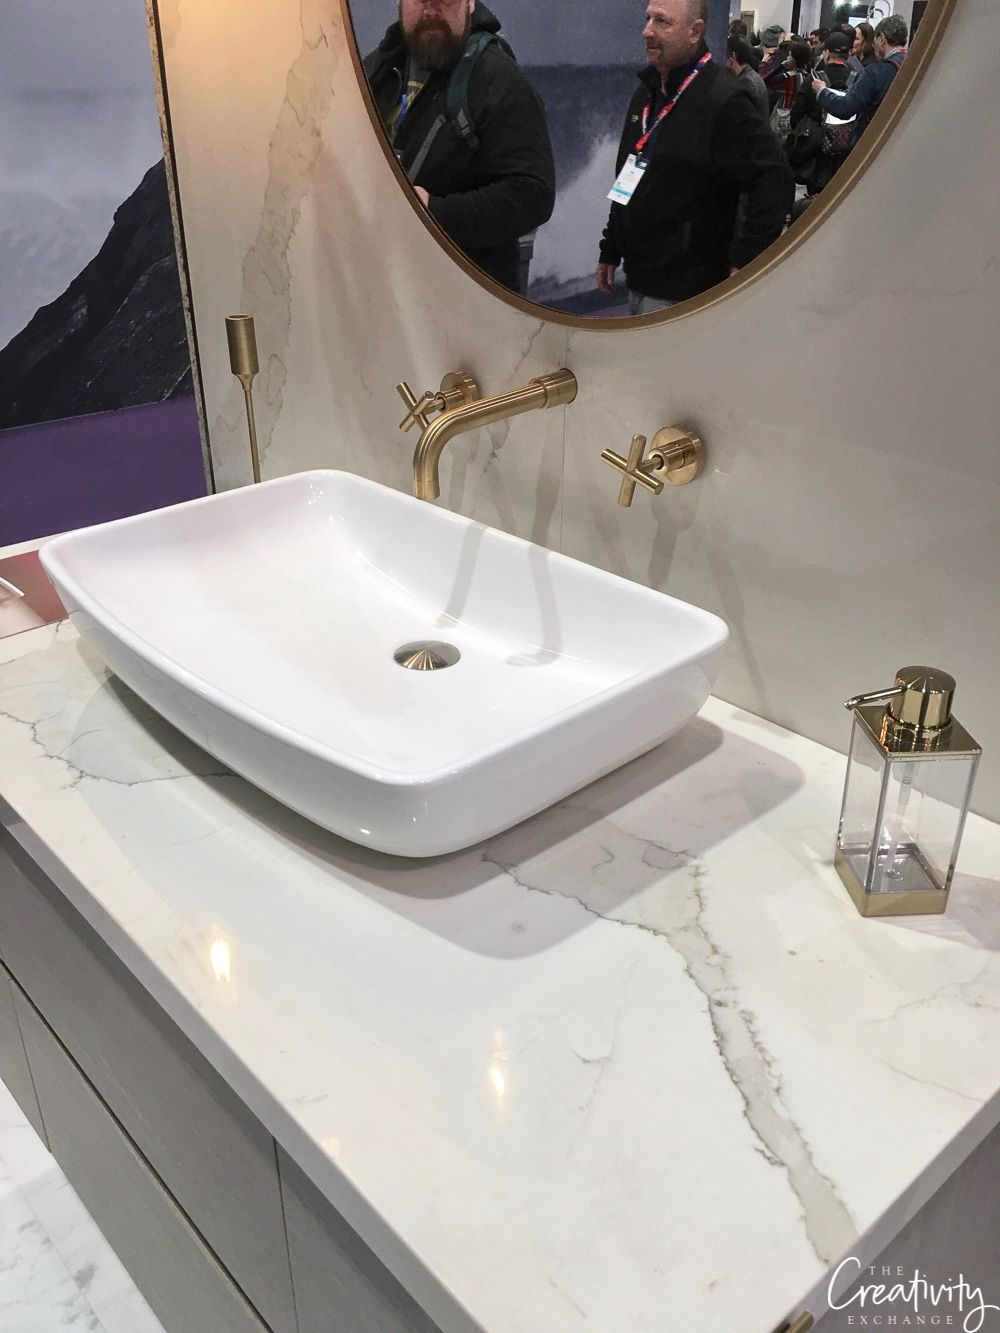 Best Material For Countertops 2019 2019 Kitchen and Bath Industry Show in Las Vegas   Master bathroom